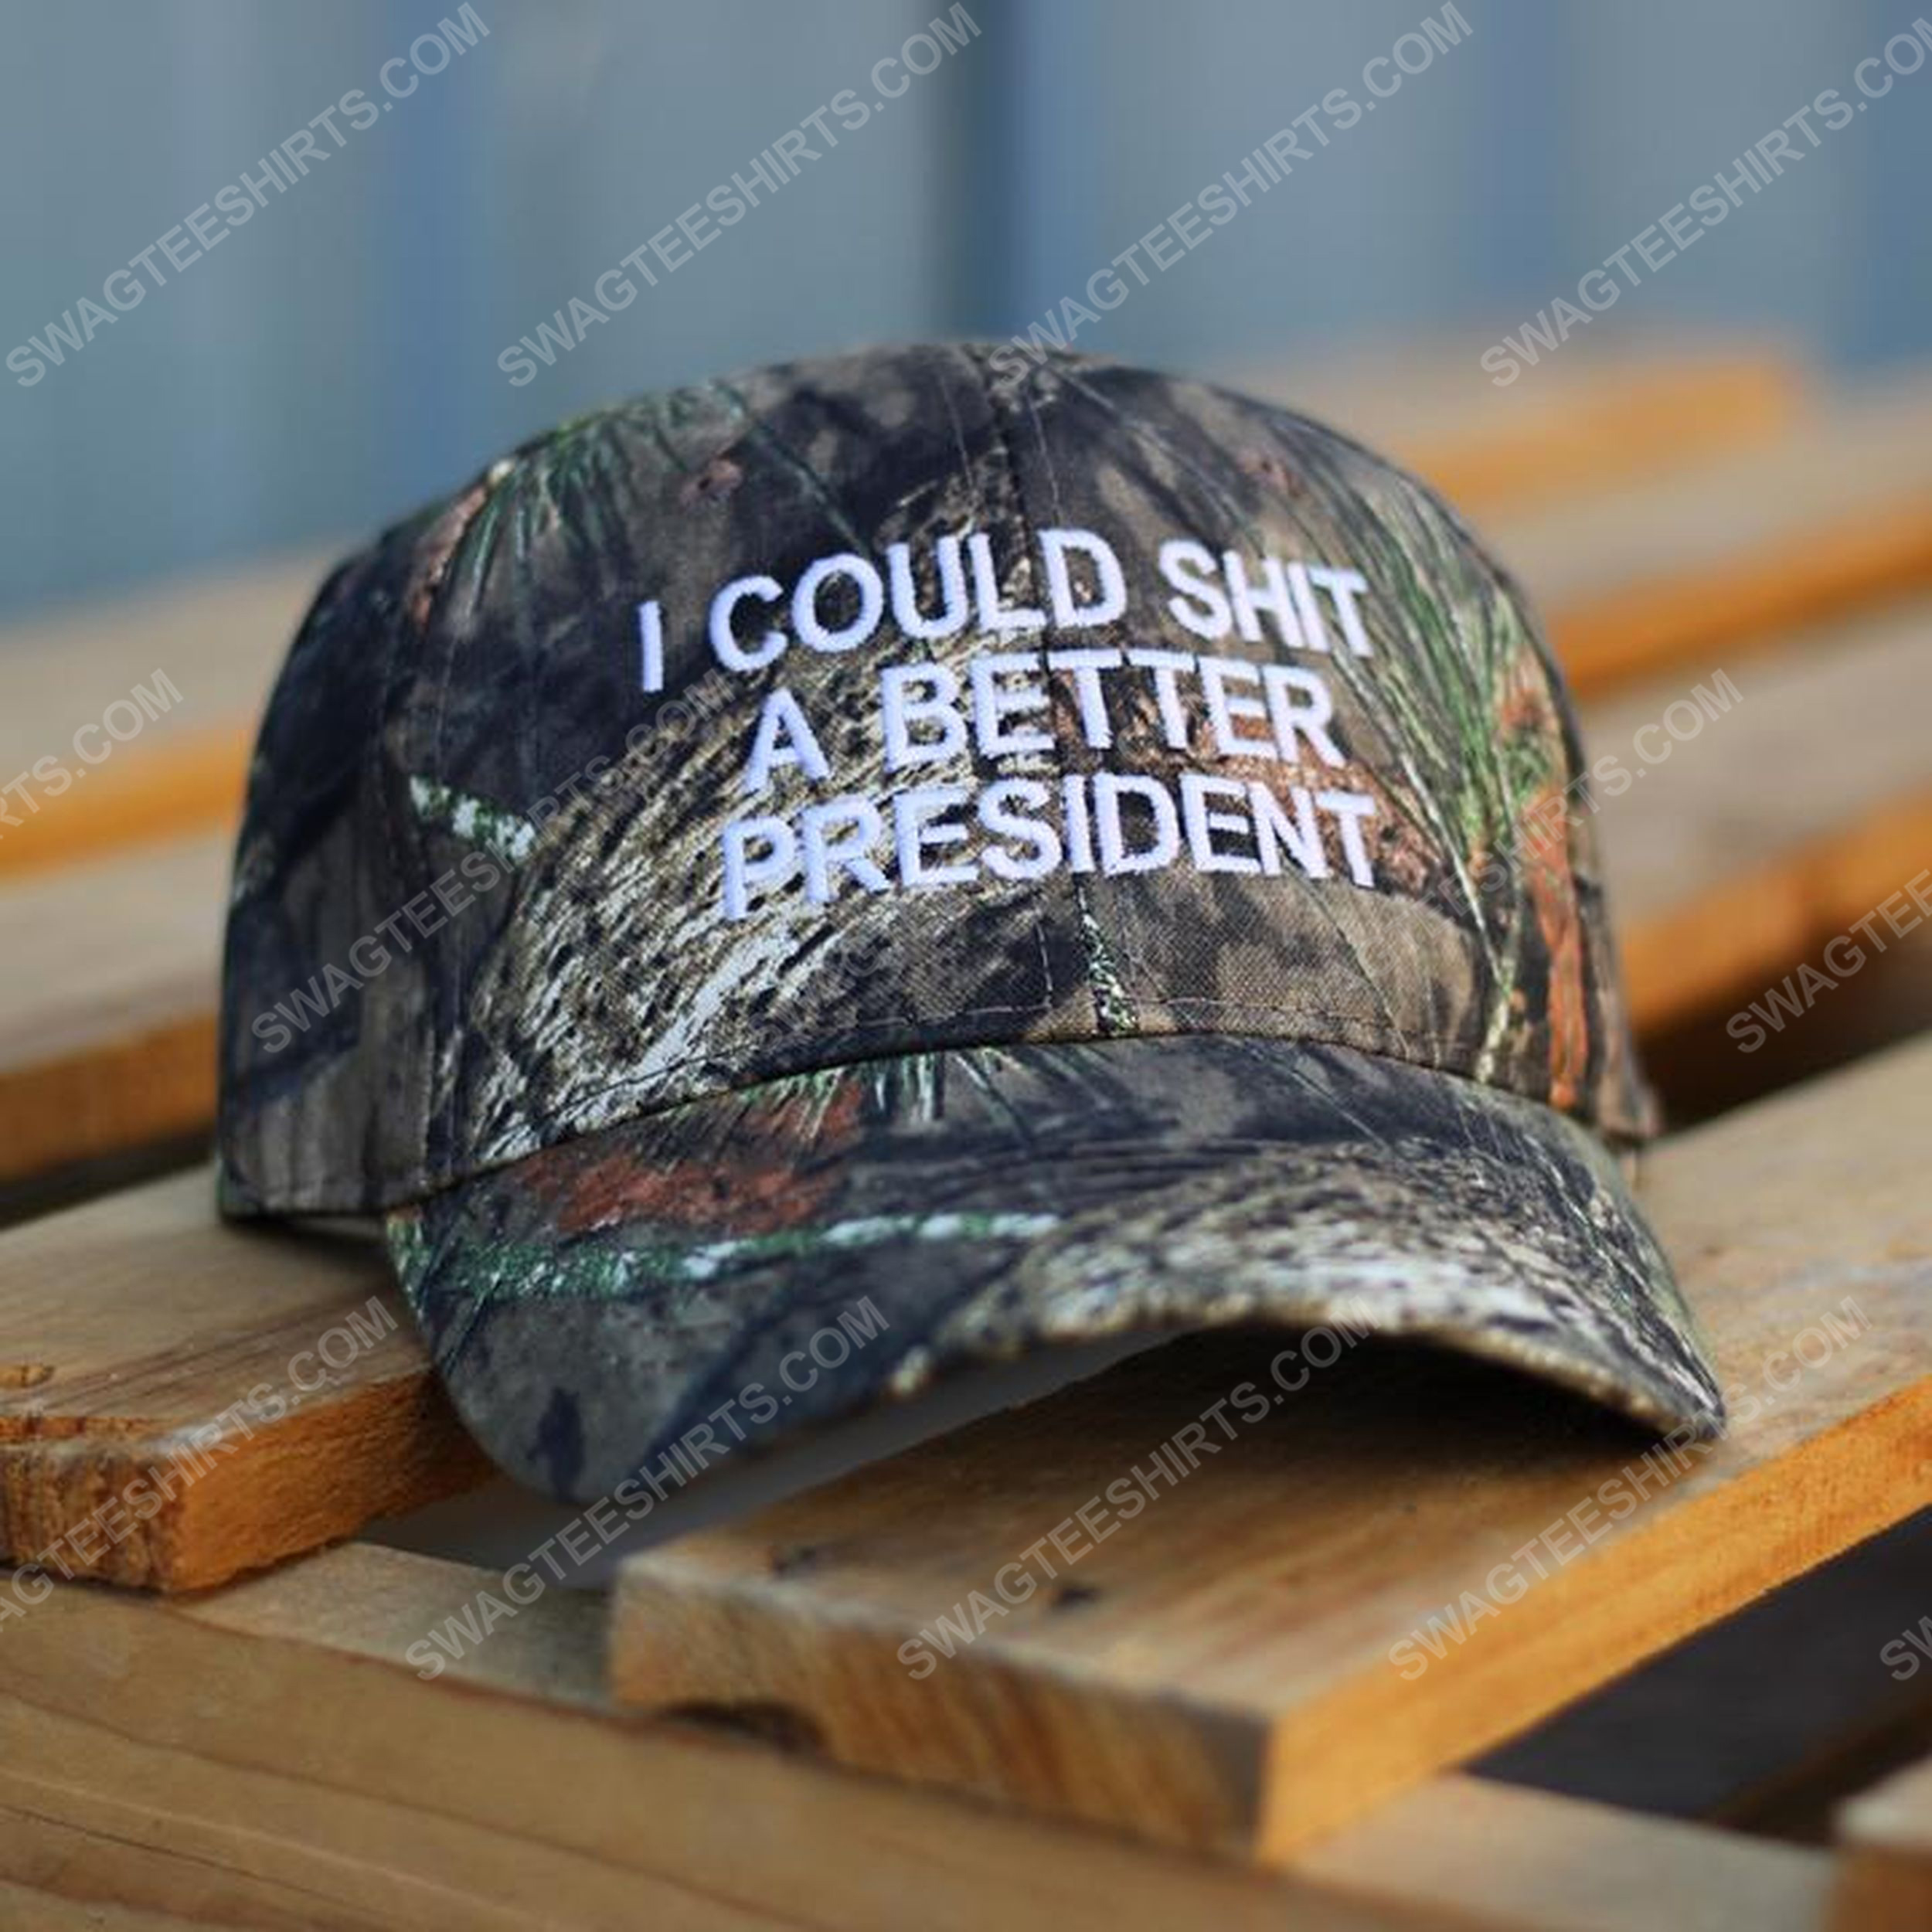 Camo i could shit a better president full print classic hat 1 - Copy (3)